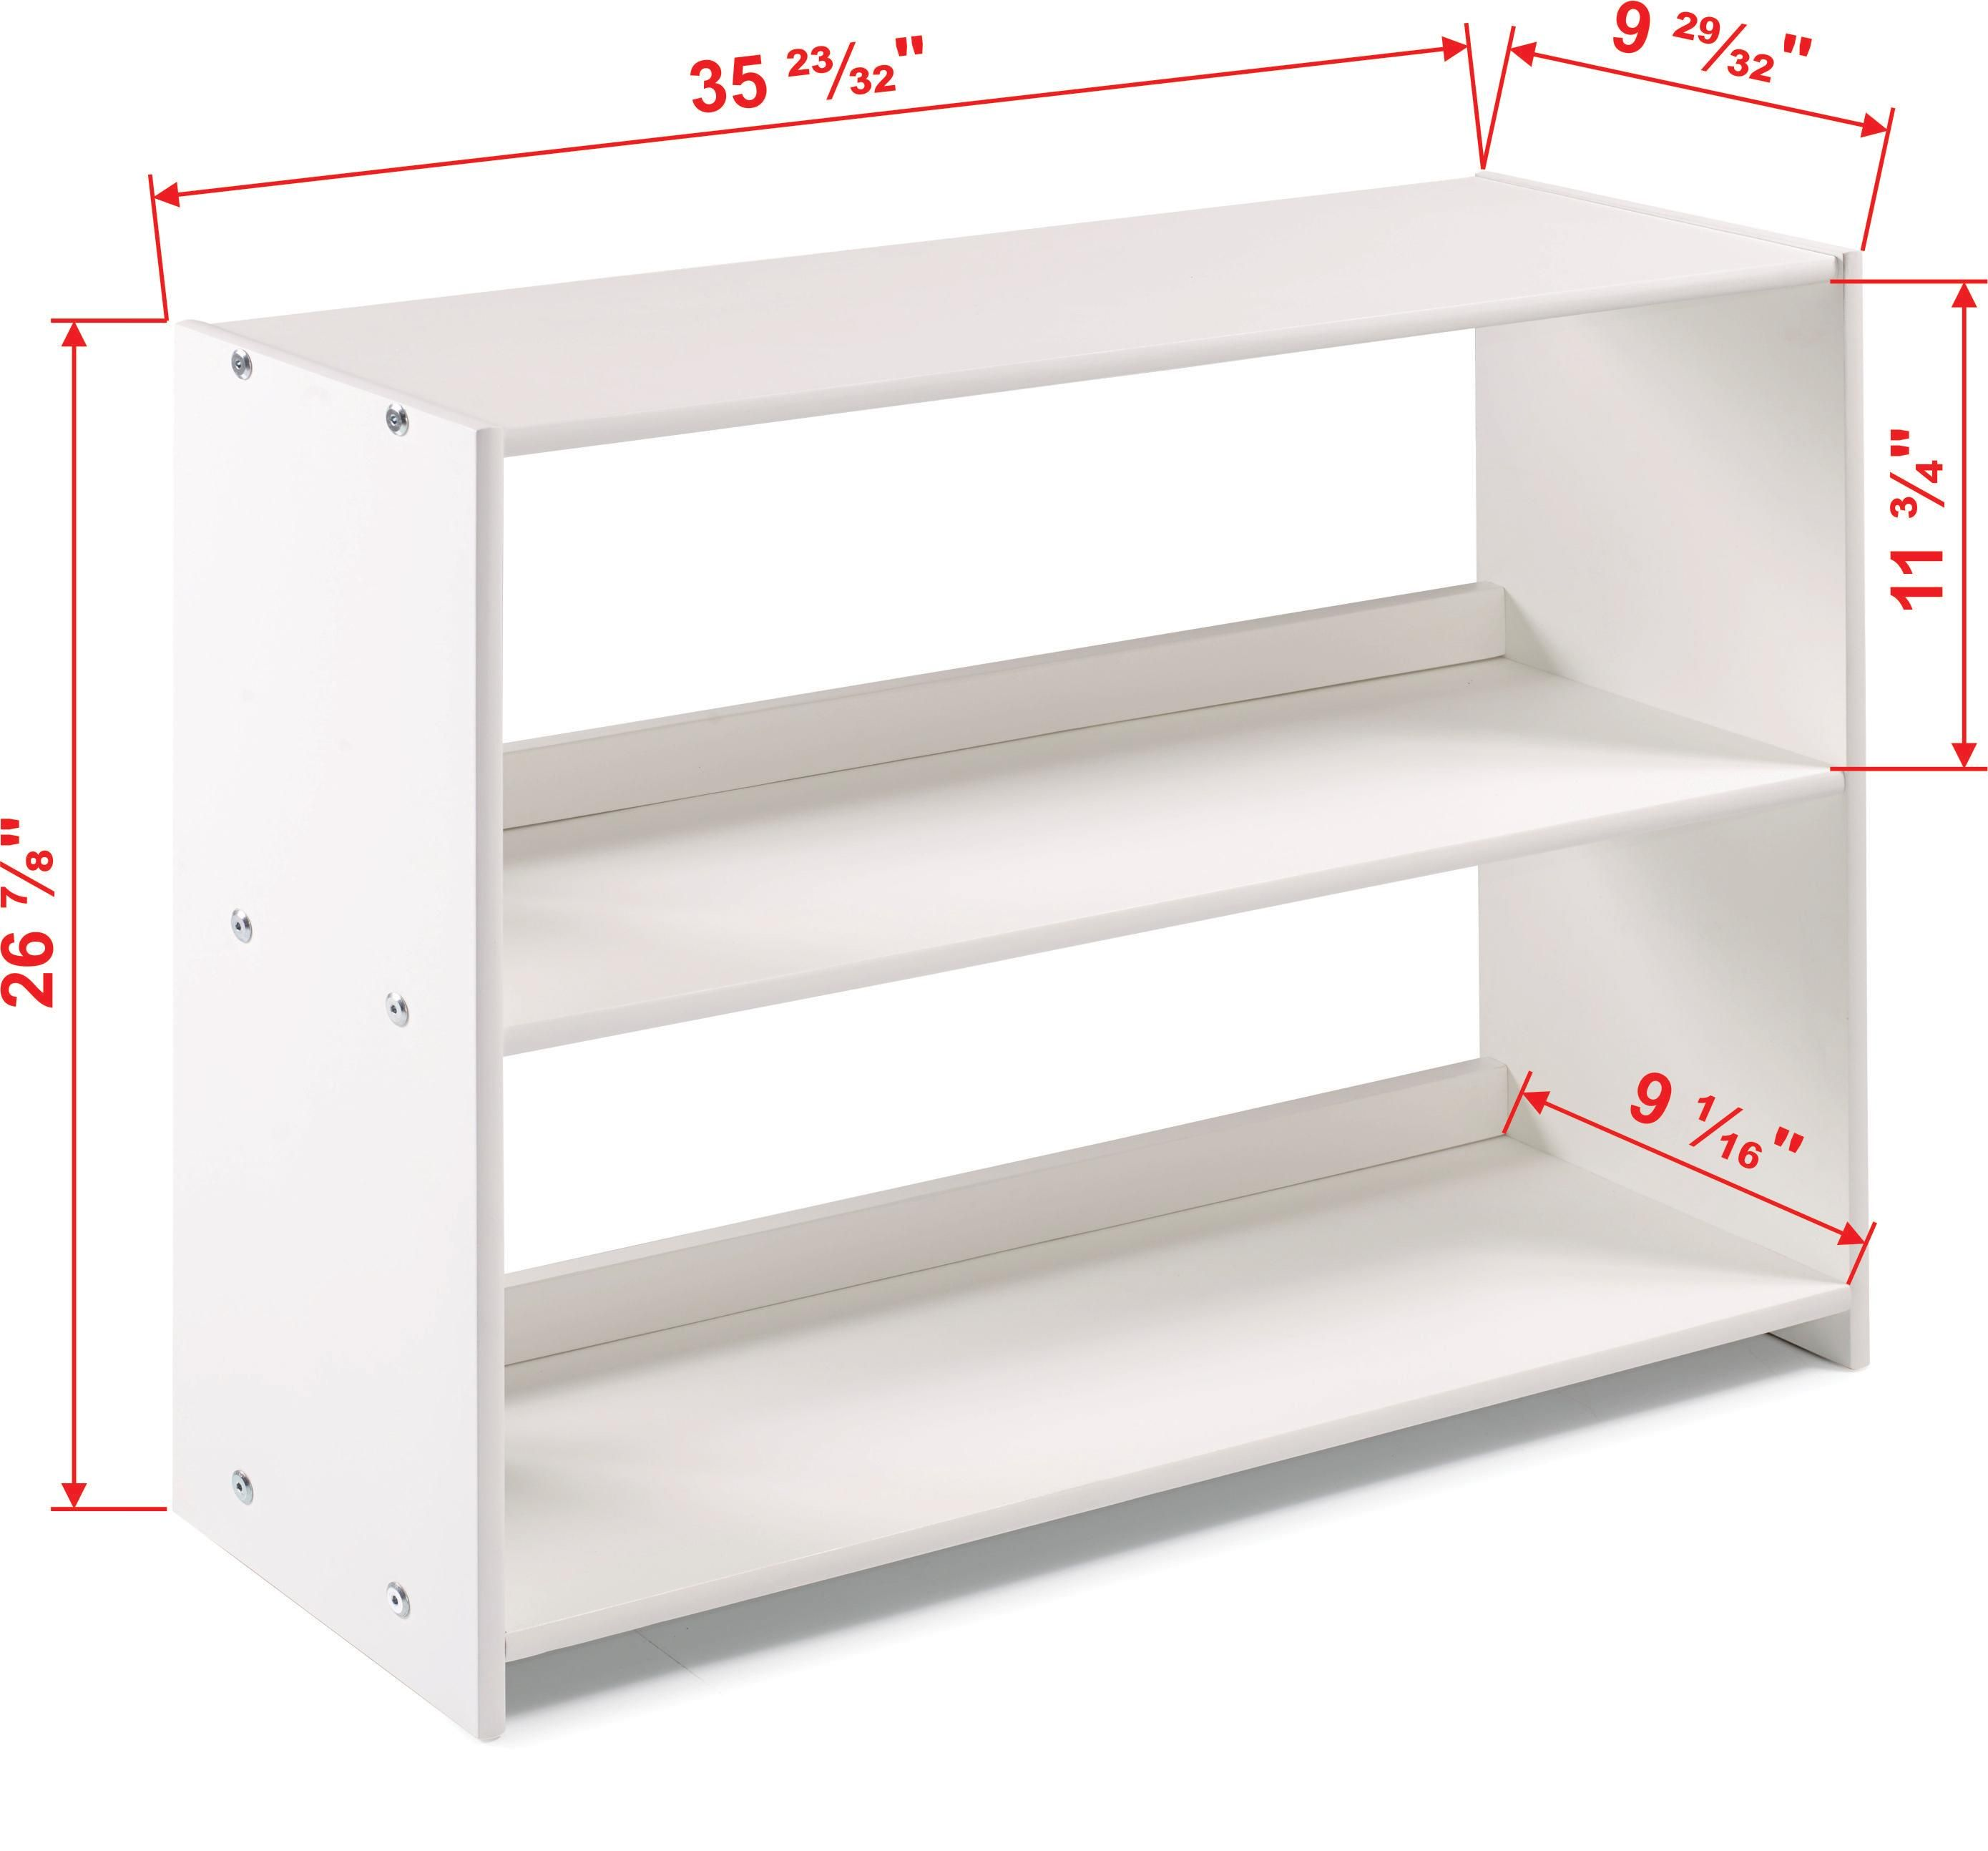 Pivot Direct Two Tone Bookcase In Grey And White PD_5000_CGW